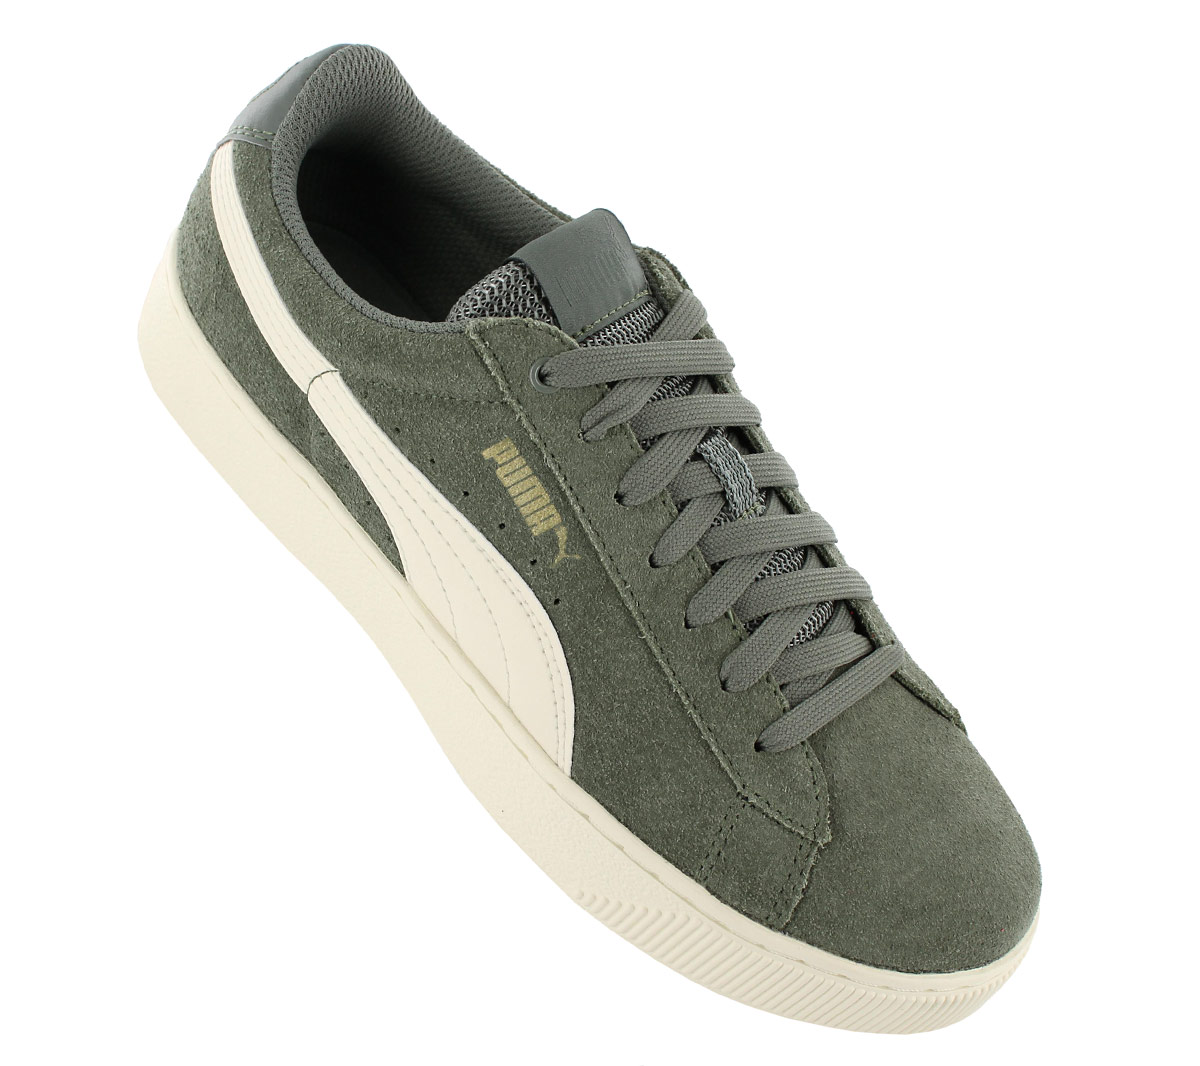 7523c102948a Details about Puma Vikky Platform Women s Sneakers Leather Agave-Grün Shoes  Sneakers 364046-01